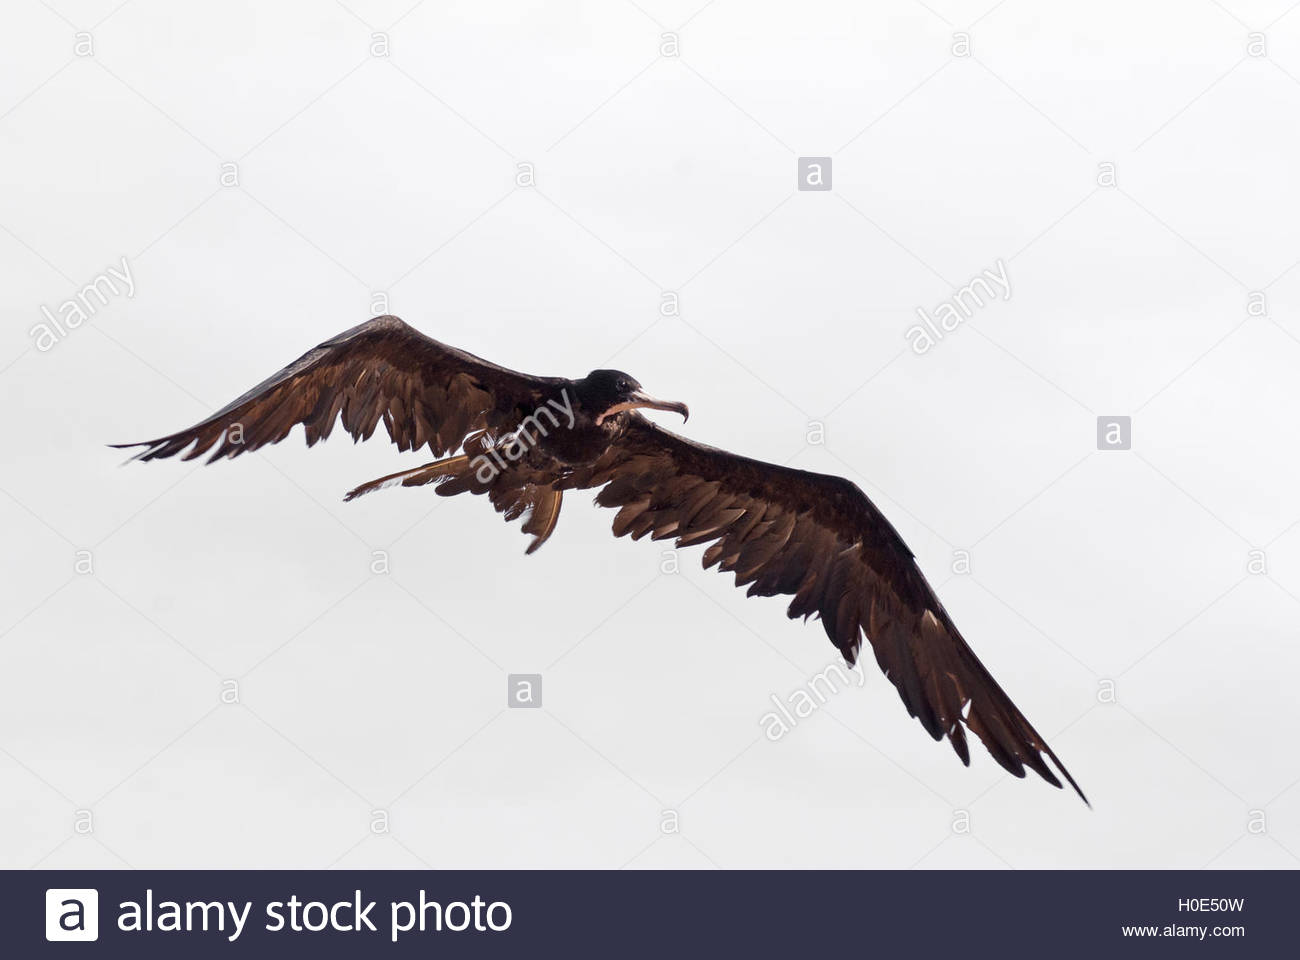 A young frigate bird in flight with its wings extended. - Stock Image